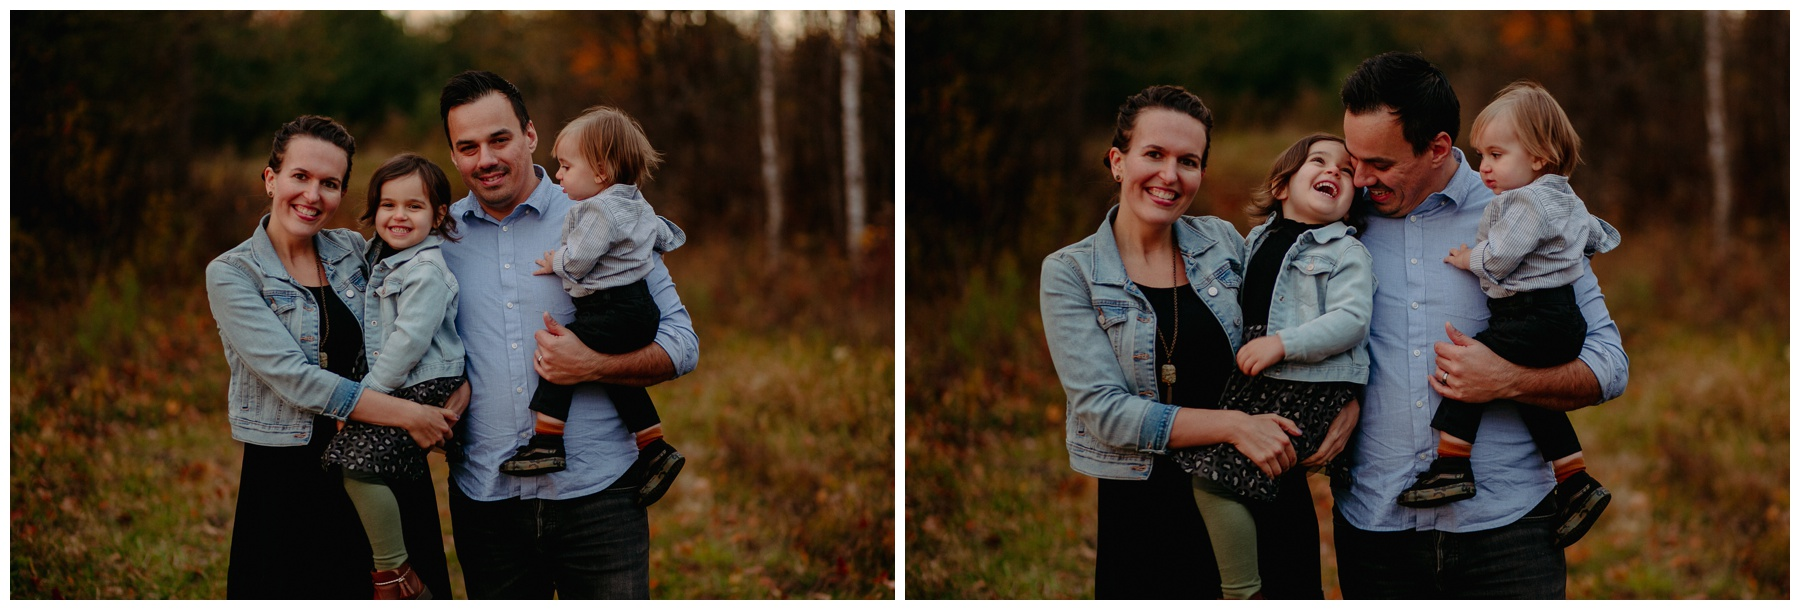 kerry ford photography - fall autumn family session perth005.jpg